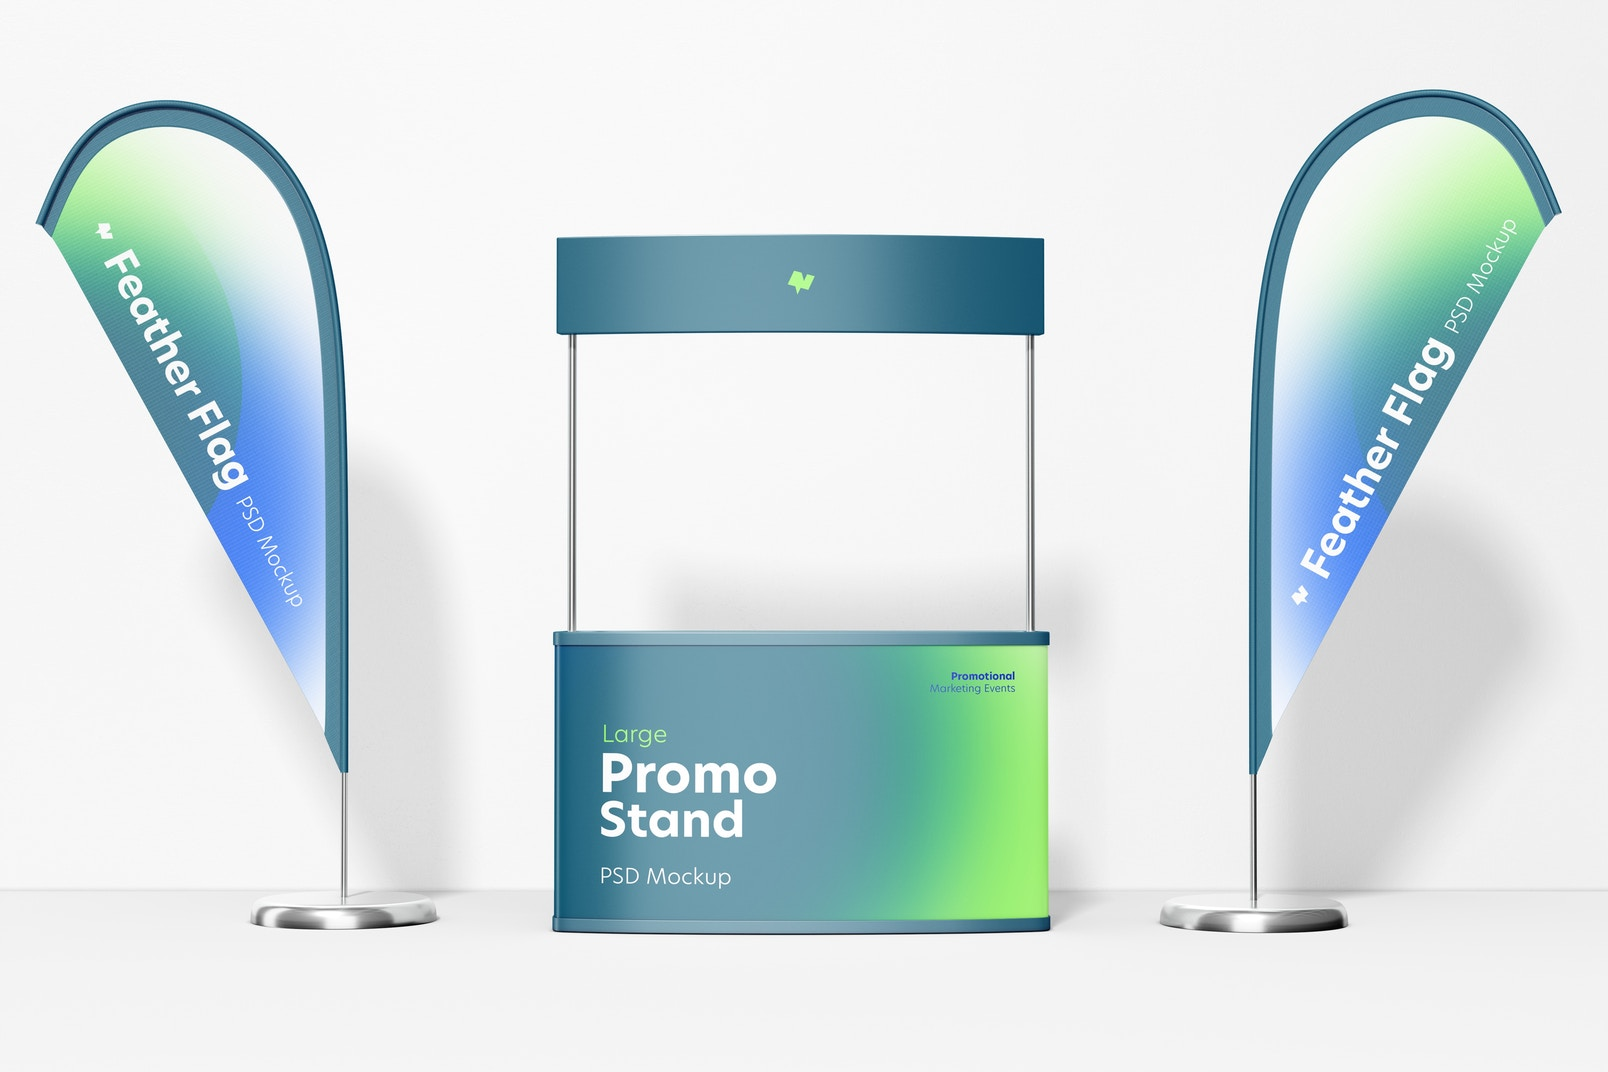 Large Promo Stand with Feather Flags Mockup